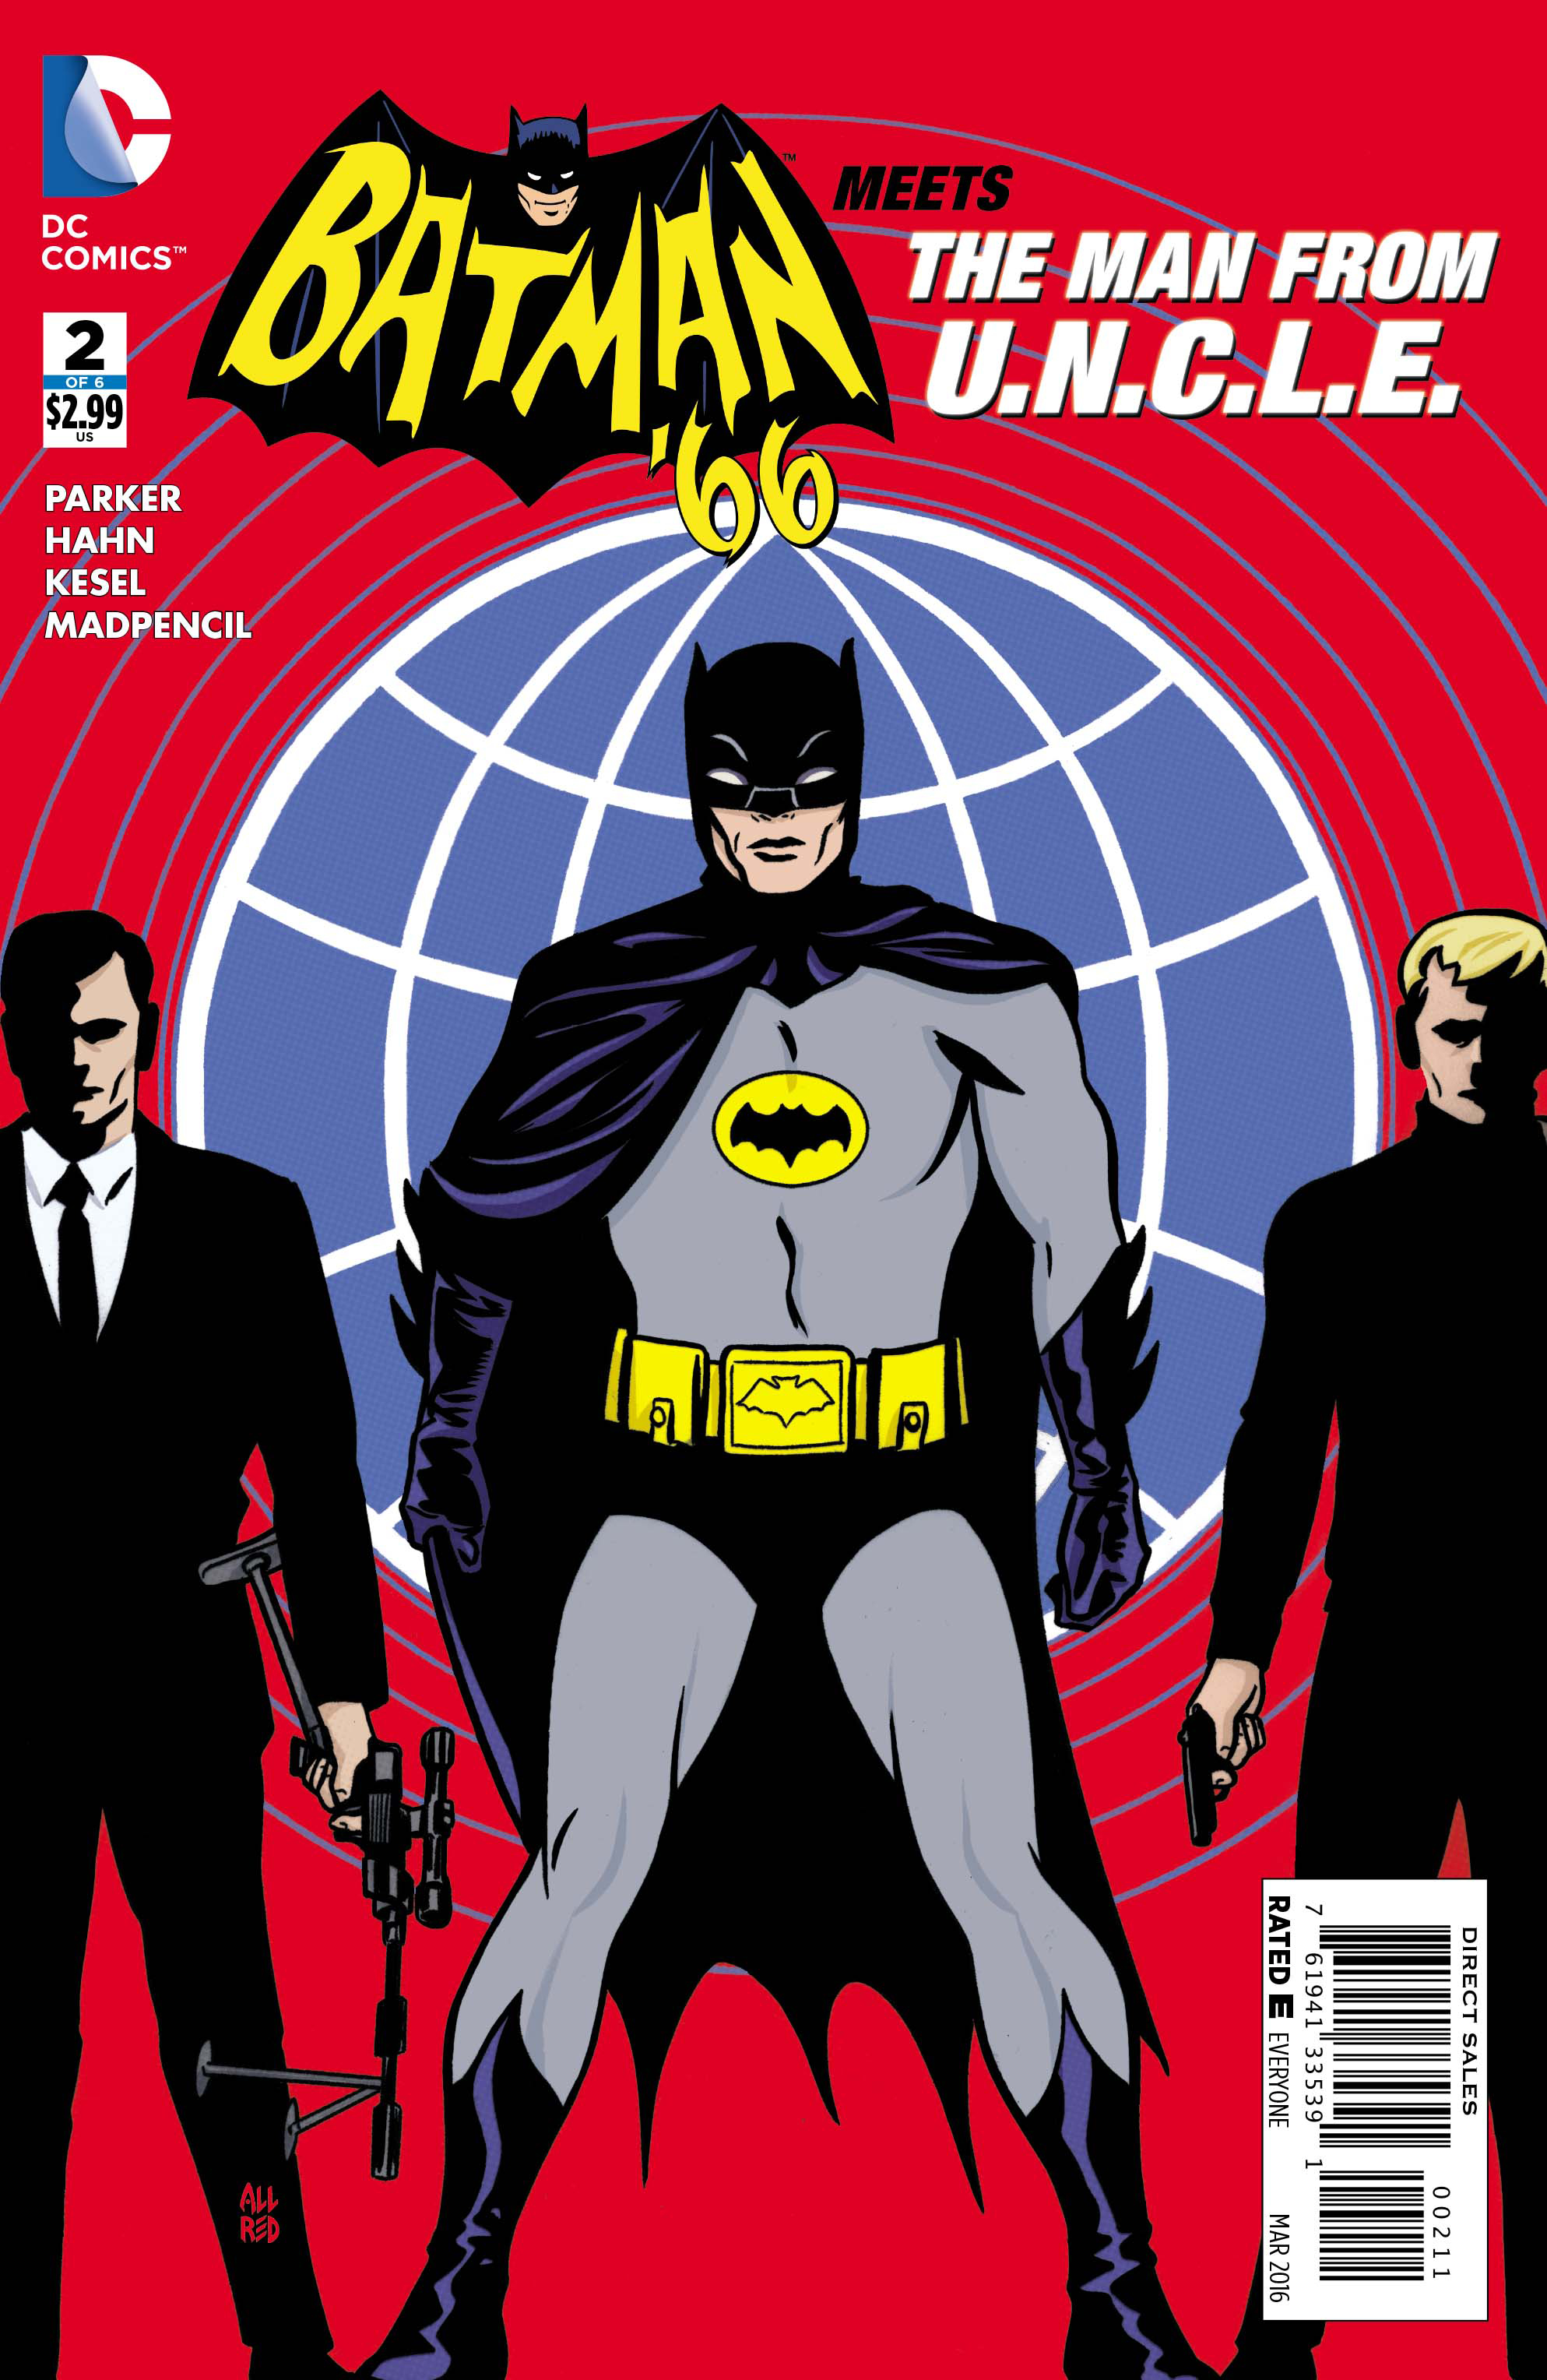 BATMAN 66 MEETS THE MAN FROM UNCLE #2 (OF 6)